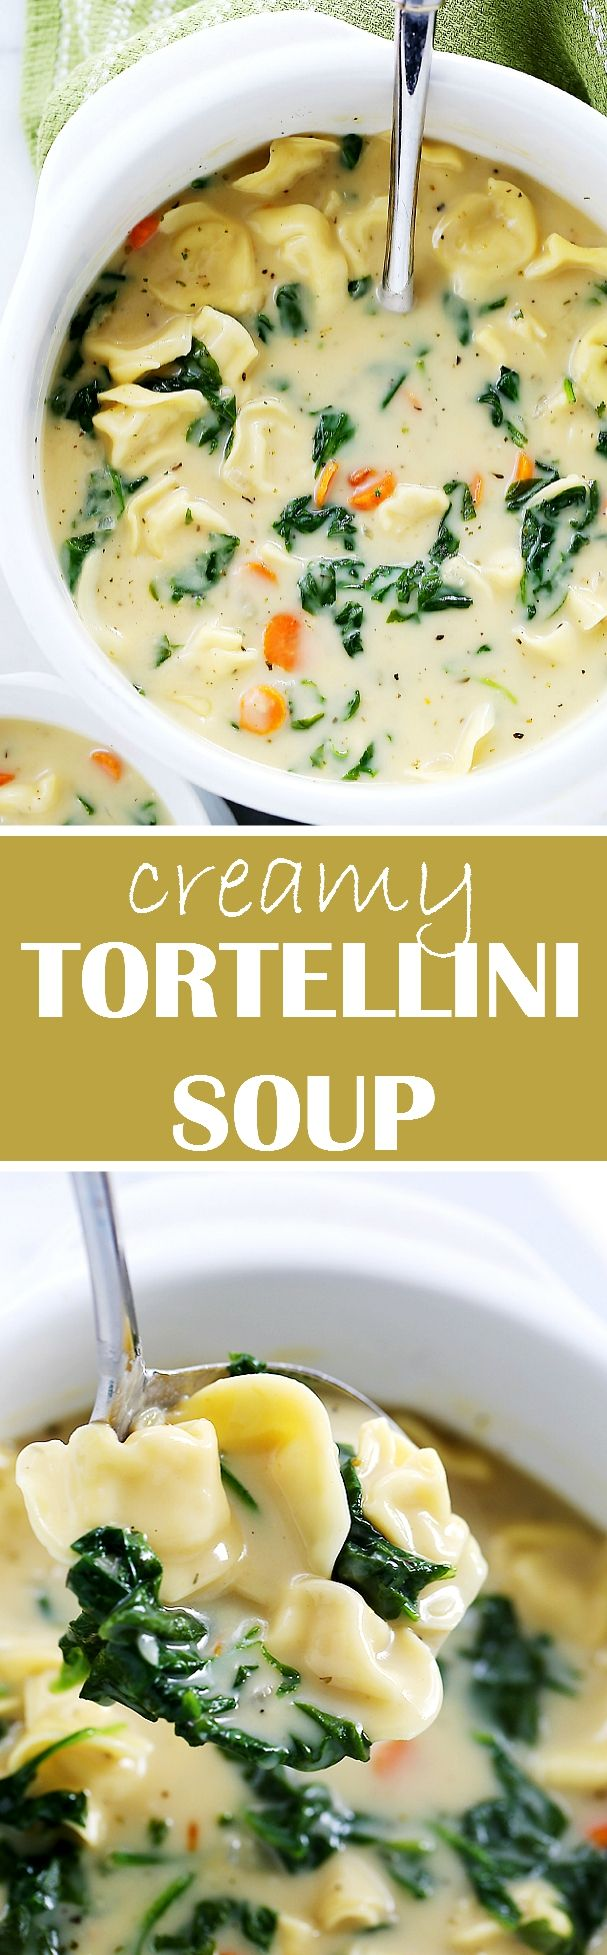 Creamy Tortellini Soup | www.diethood.com | Quick, easy, and deliciously creamy…